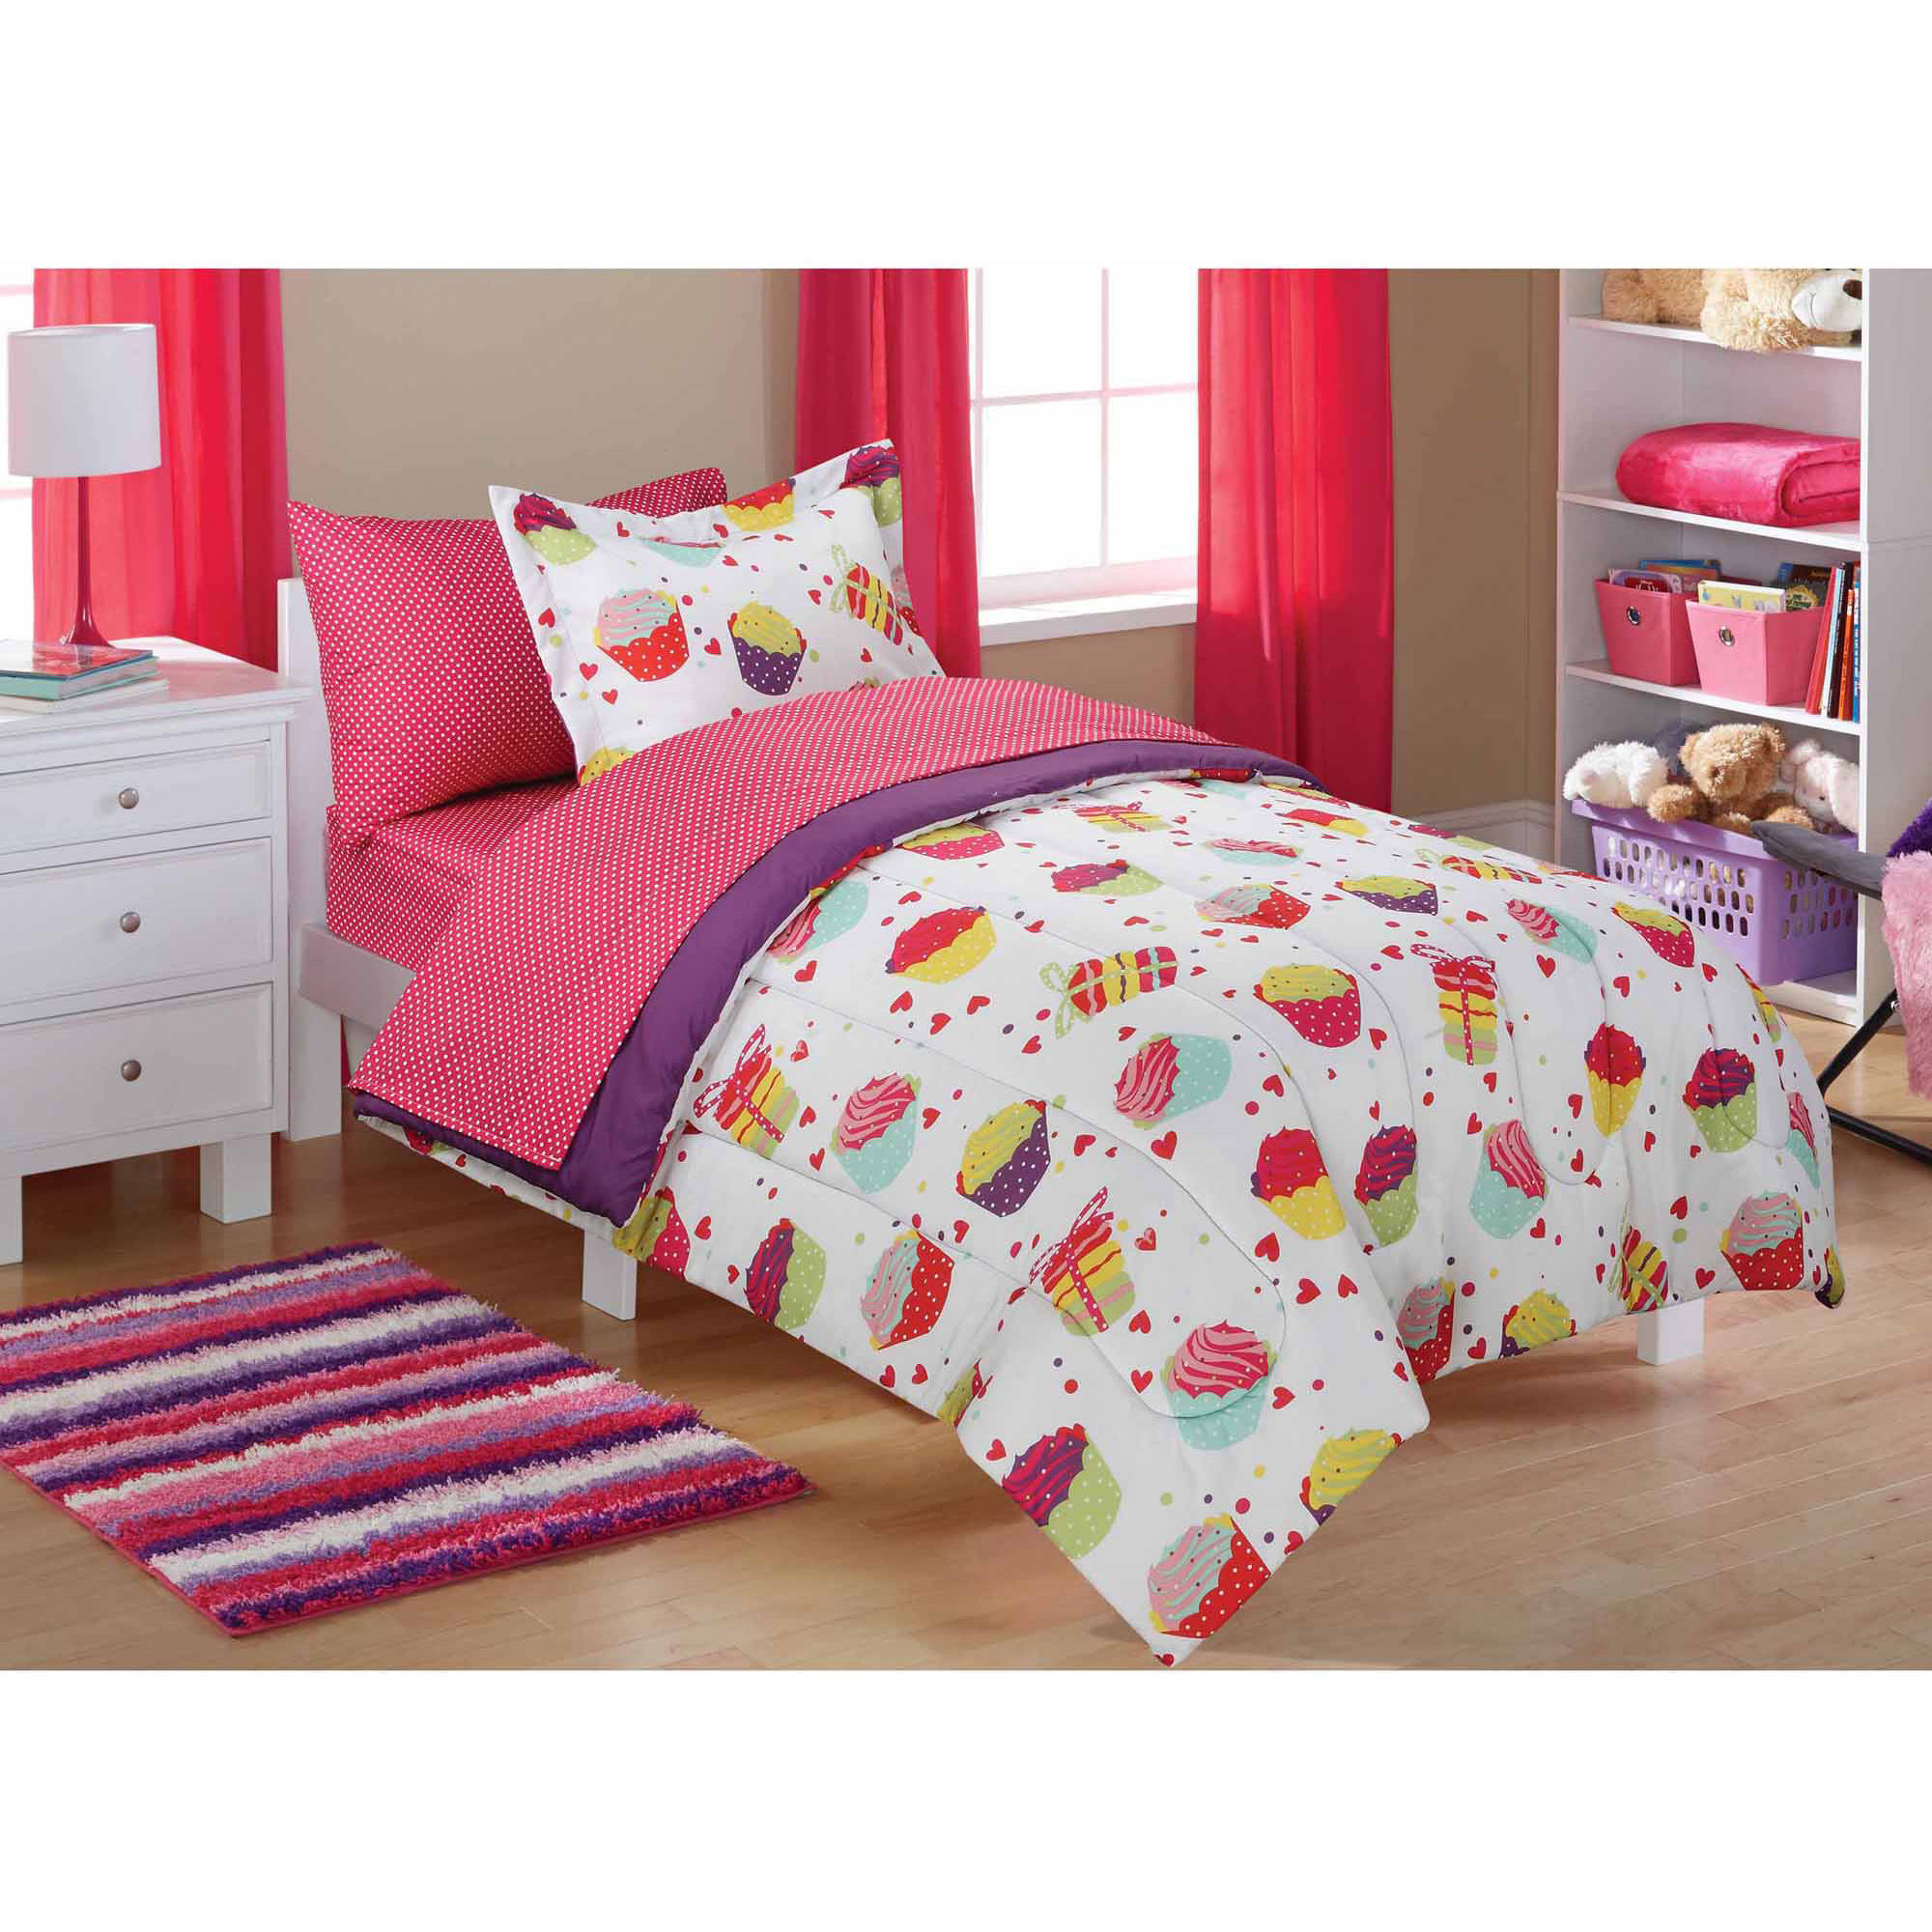 Mainstays Kids Cupcake Coordinated Bed in a Bag by Keeco